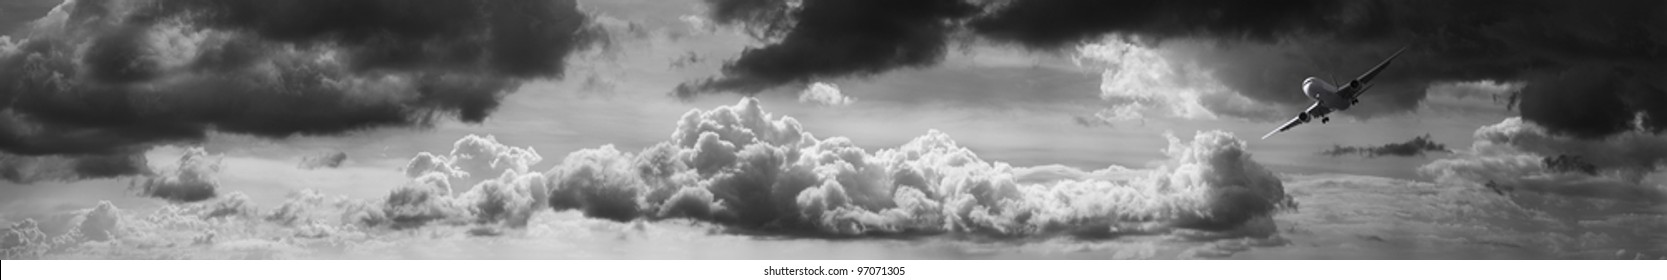 Jet aircraft in a stormy sky. Panoramic composition in very high resolution. Monochrome image.